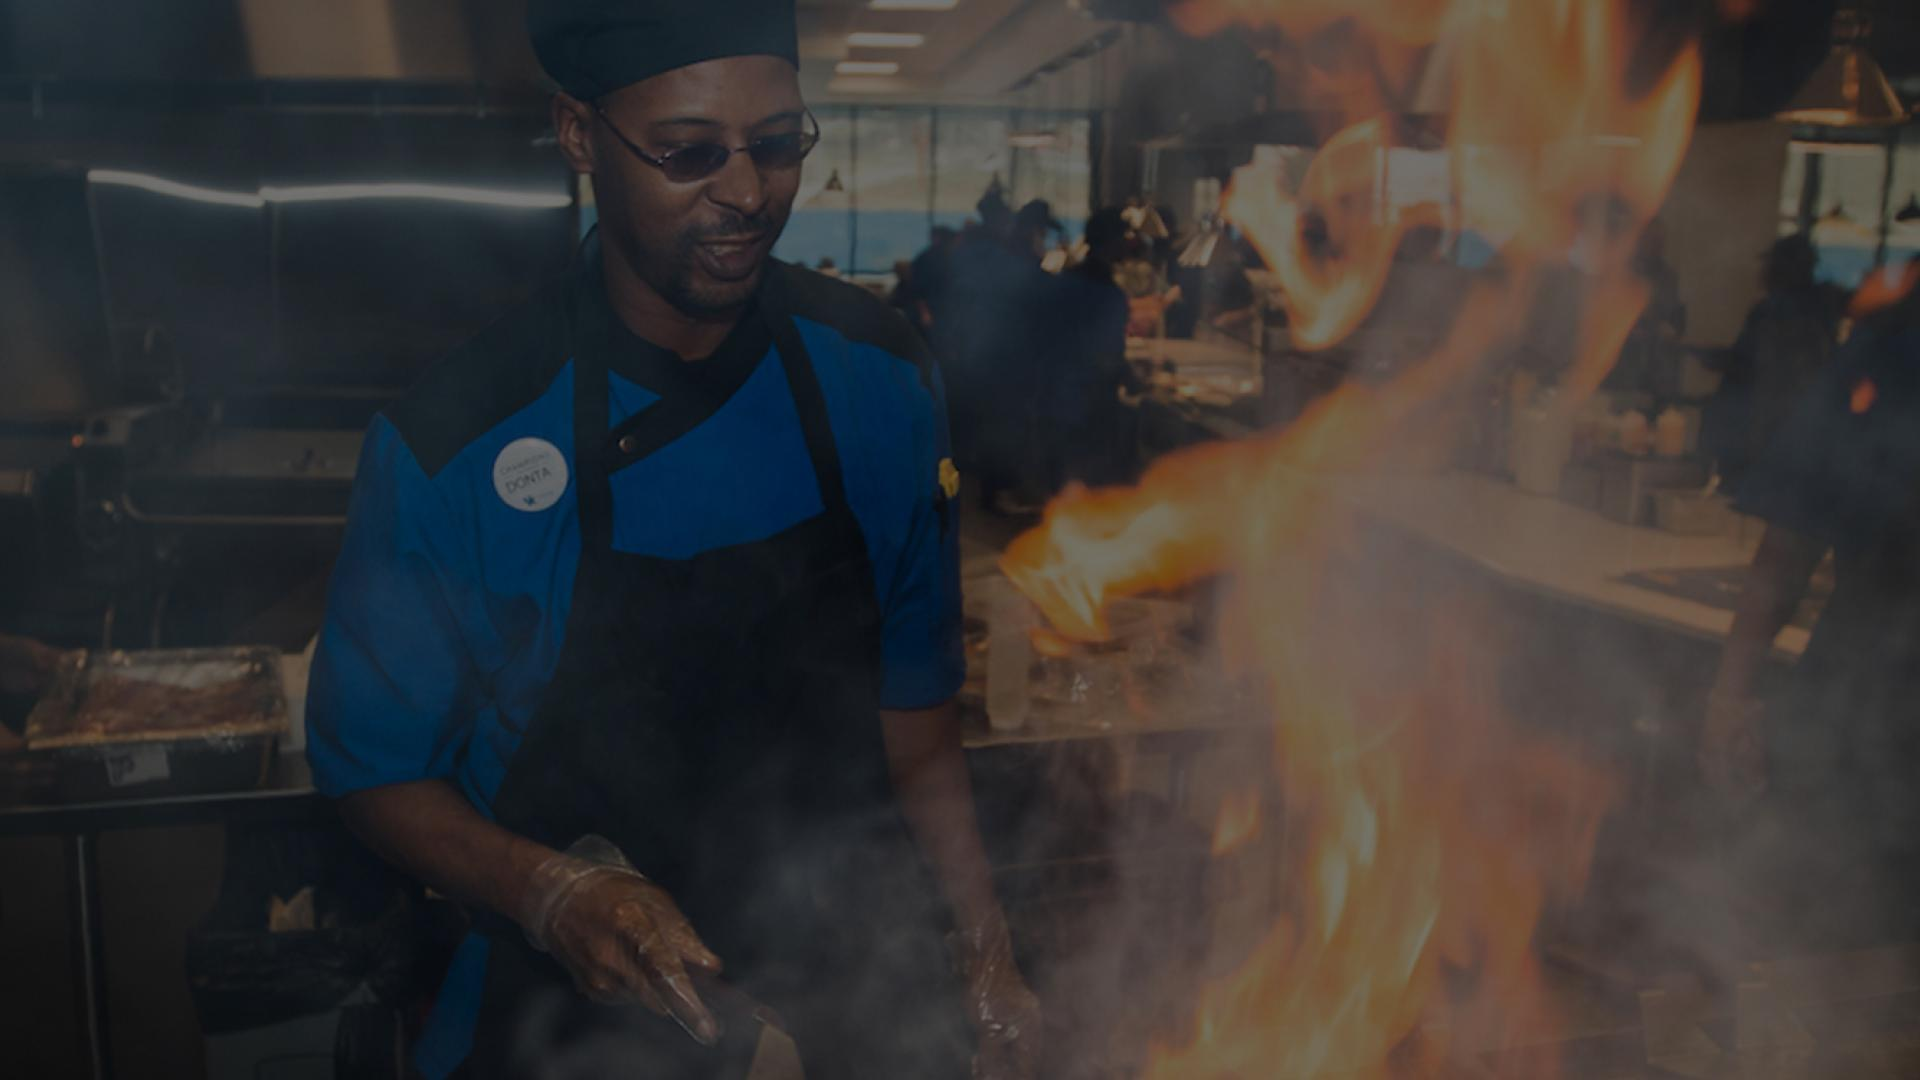 A chef cooks up a blazing meal in the new Student Center cafeteria